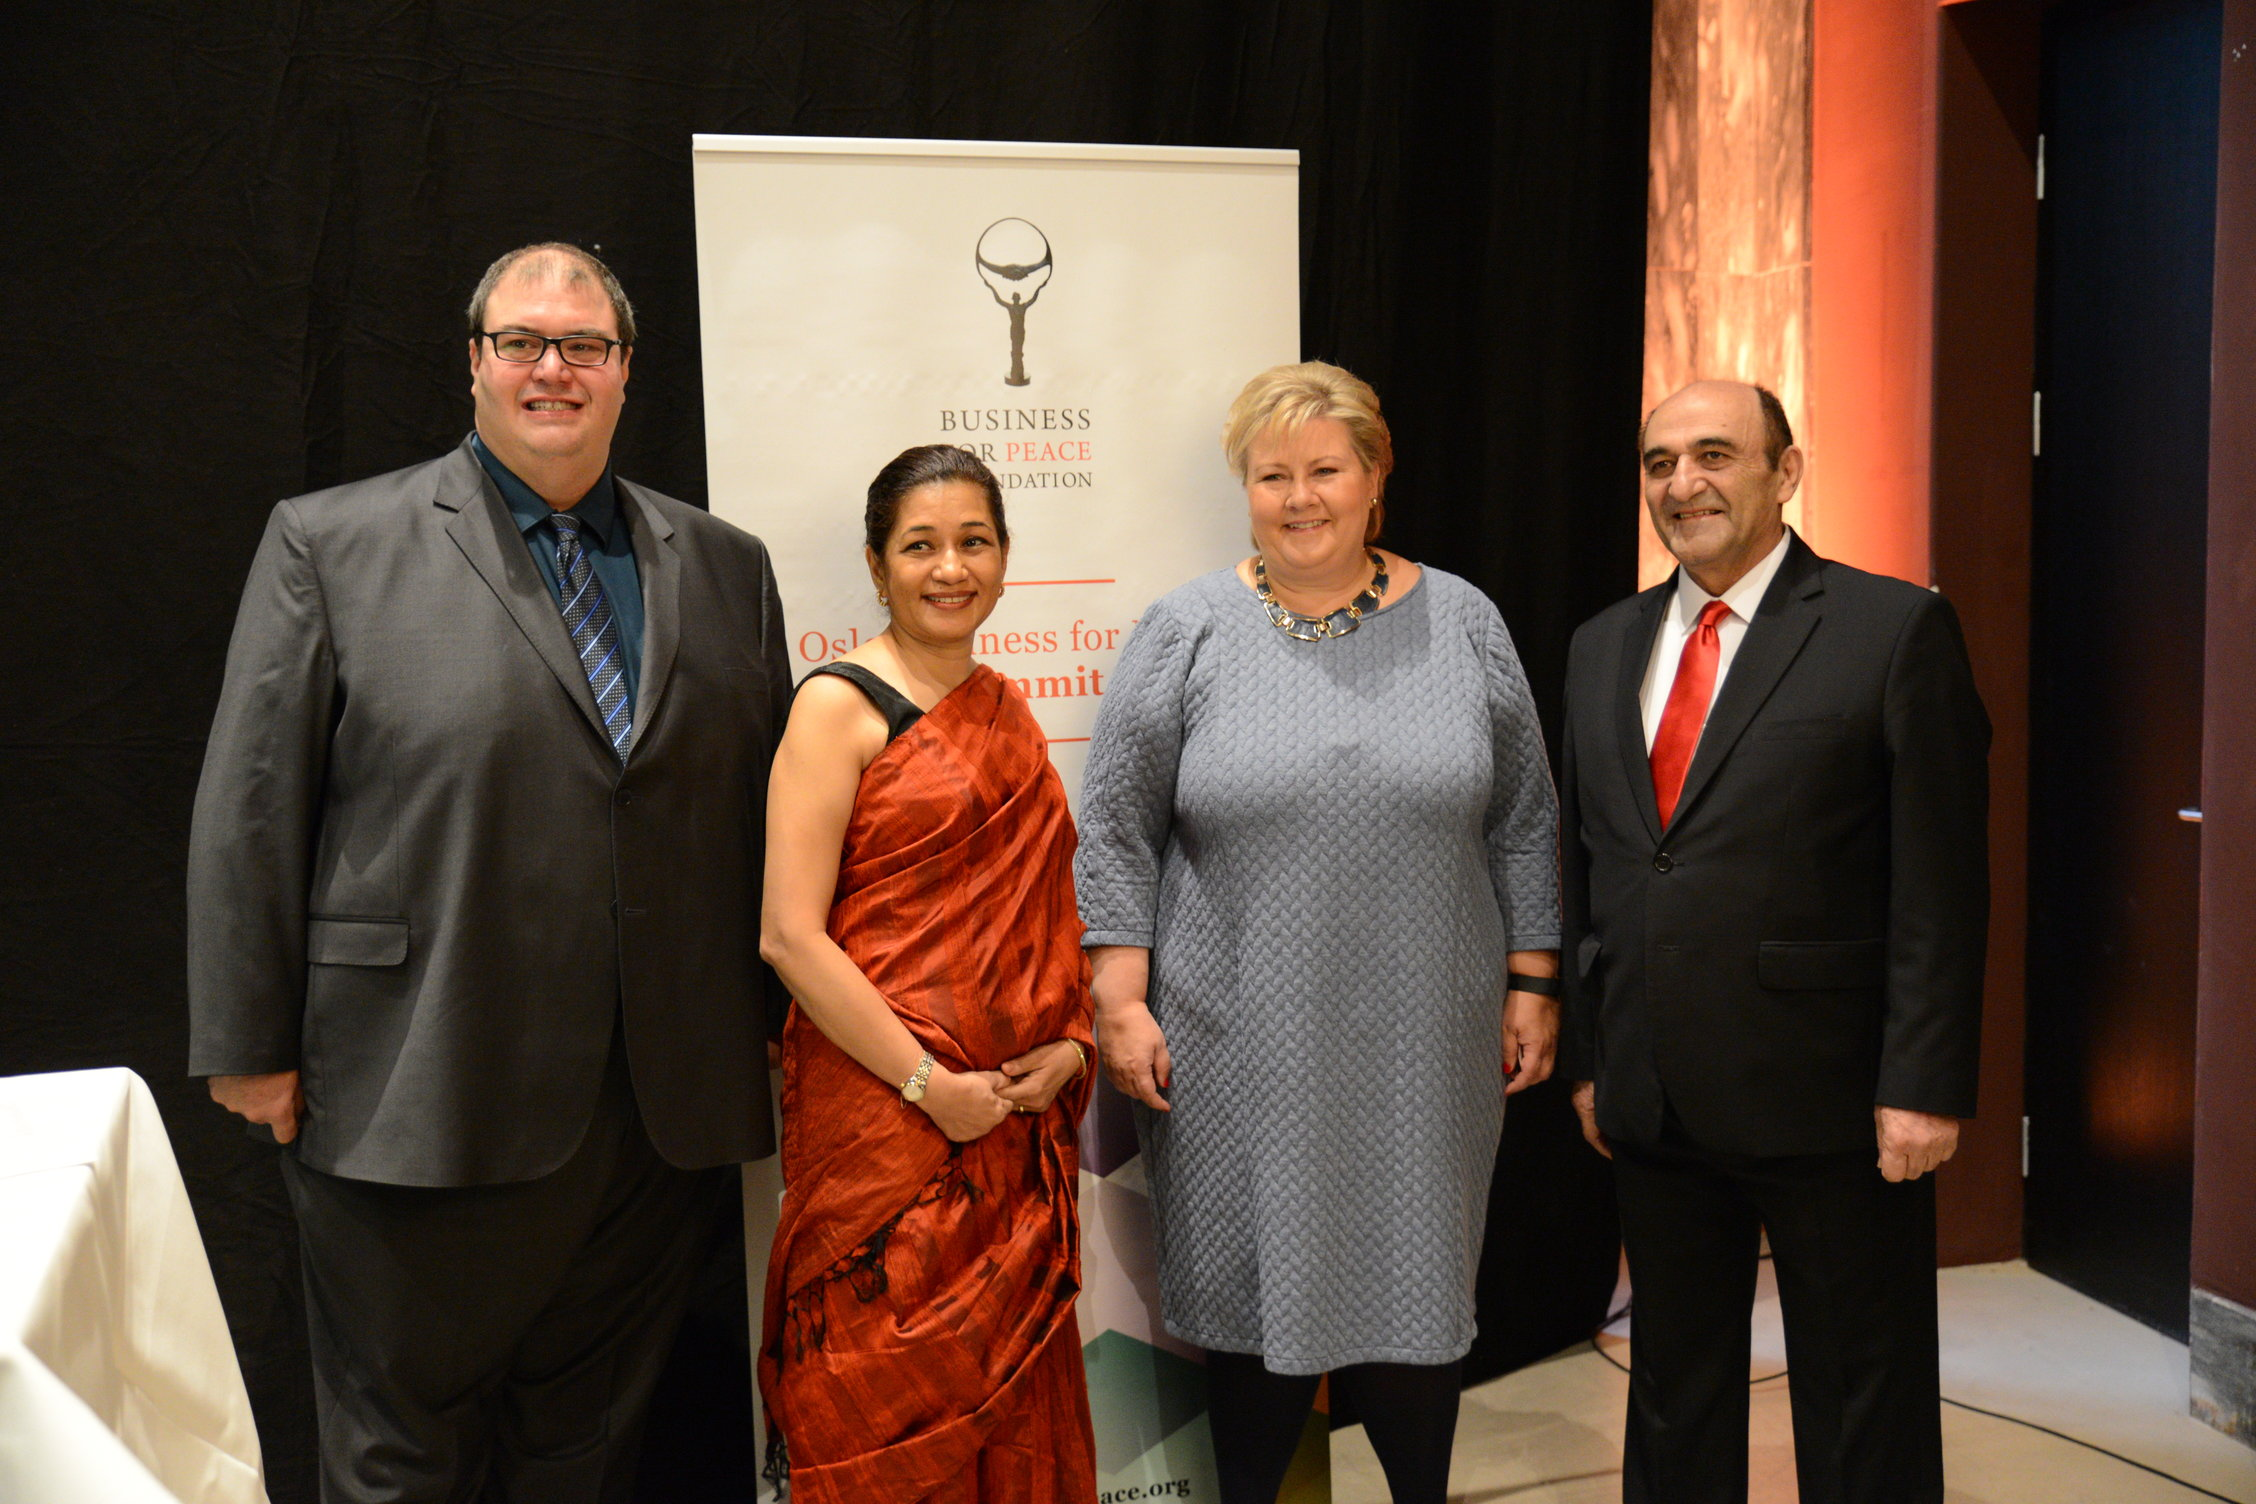 From left to right: Murad Al-Katib, Durreen Shahnaz, Erna Solberg and Harley Seyedin